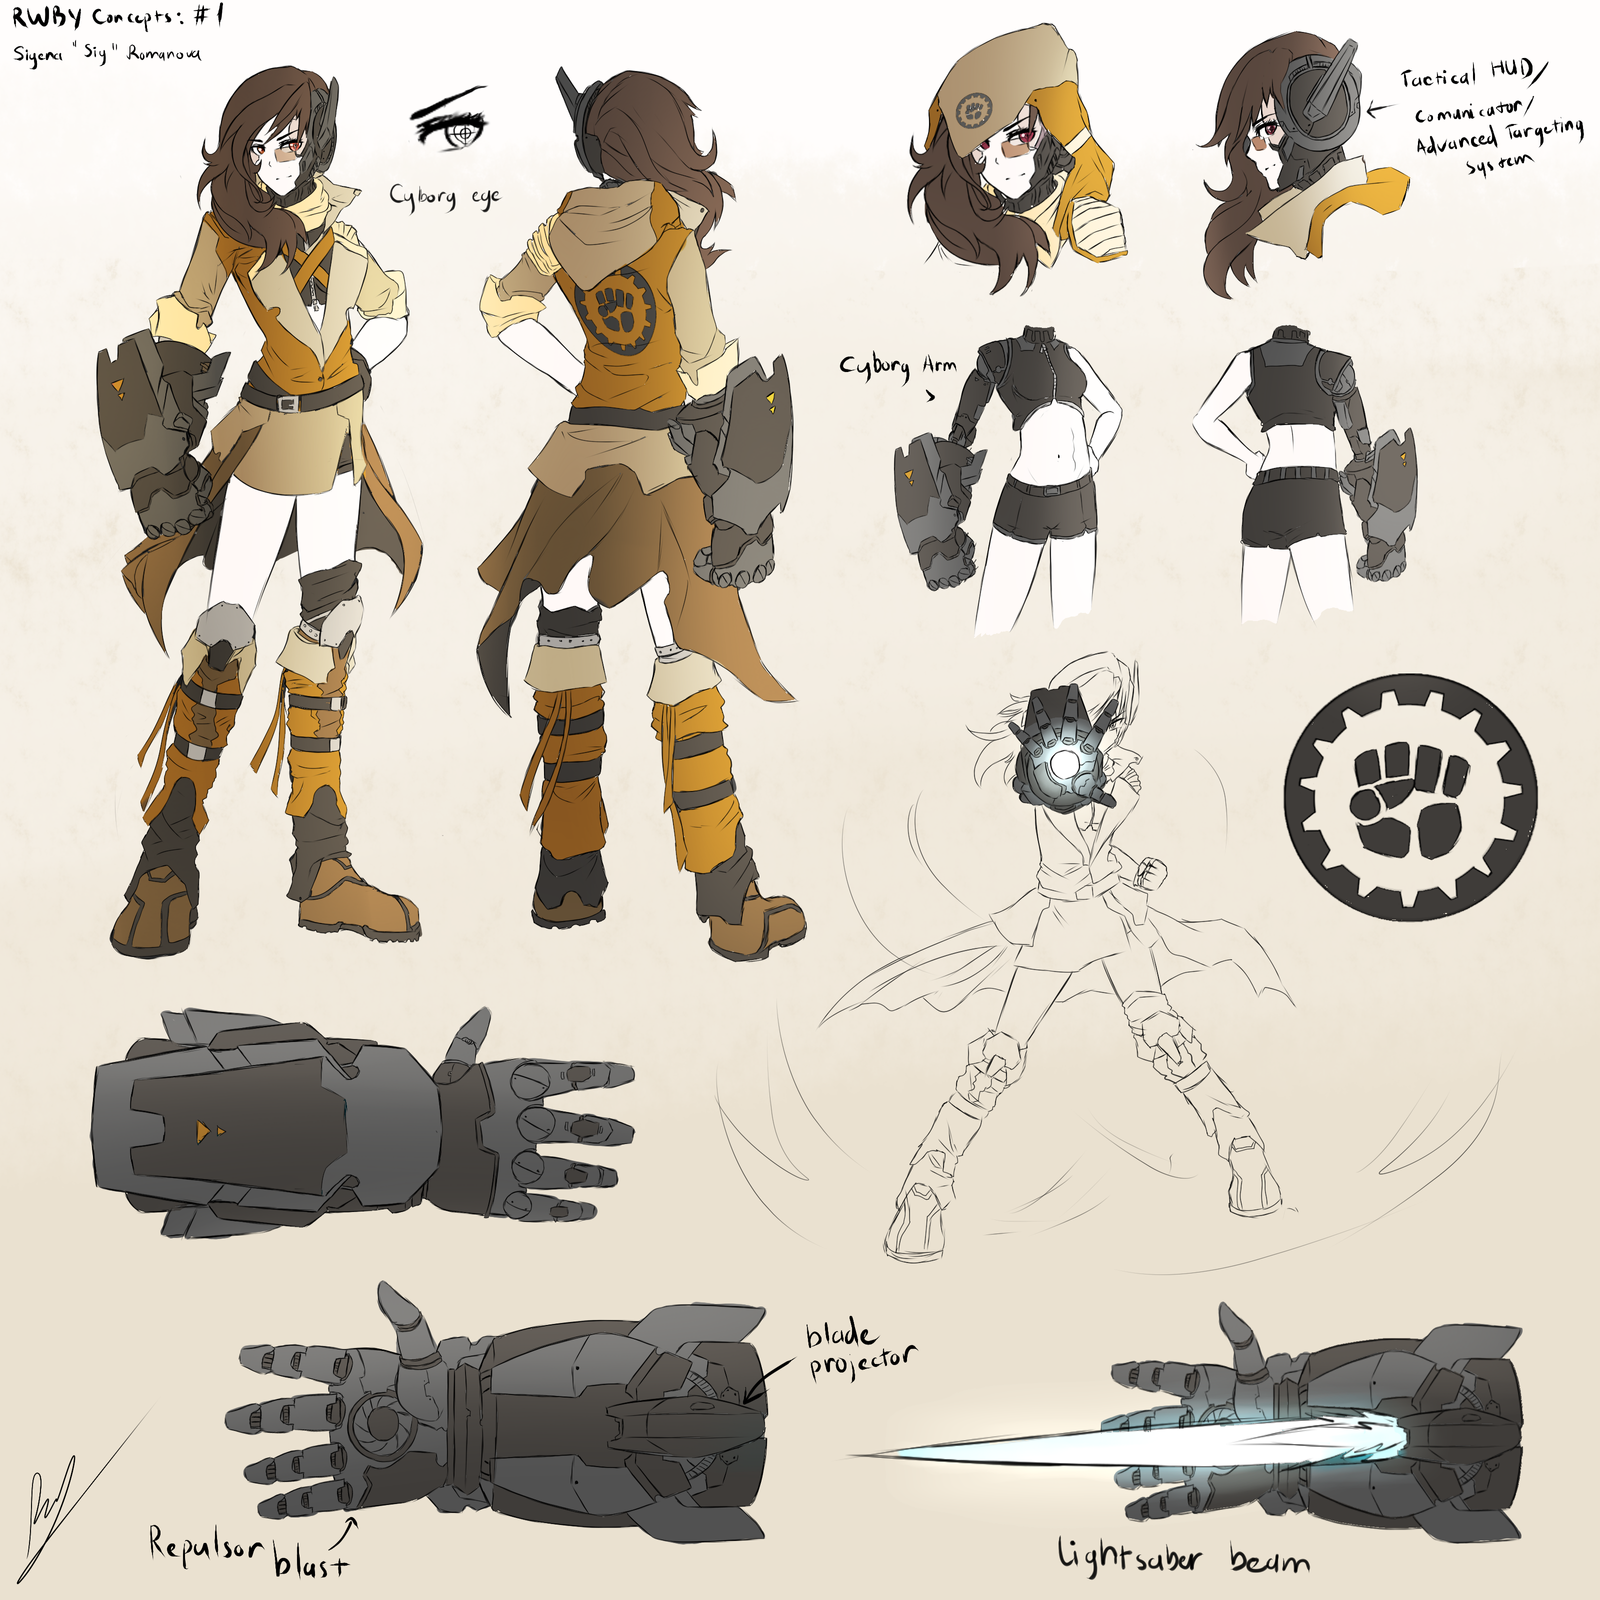 RWBY Crow Speculation Design 393687205 moreover Rwby Blake Sketch 463751563 further 16087 in addition RWBYs02e08 further Page 712. on rwby vol character designs